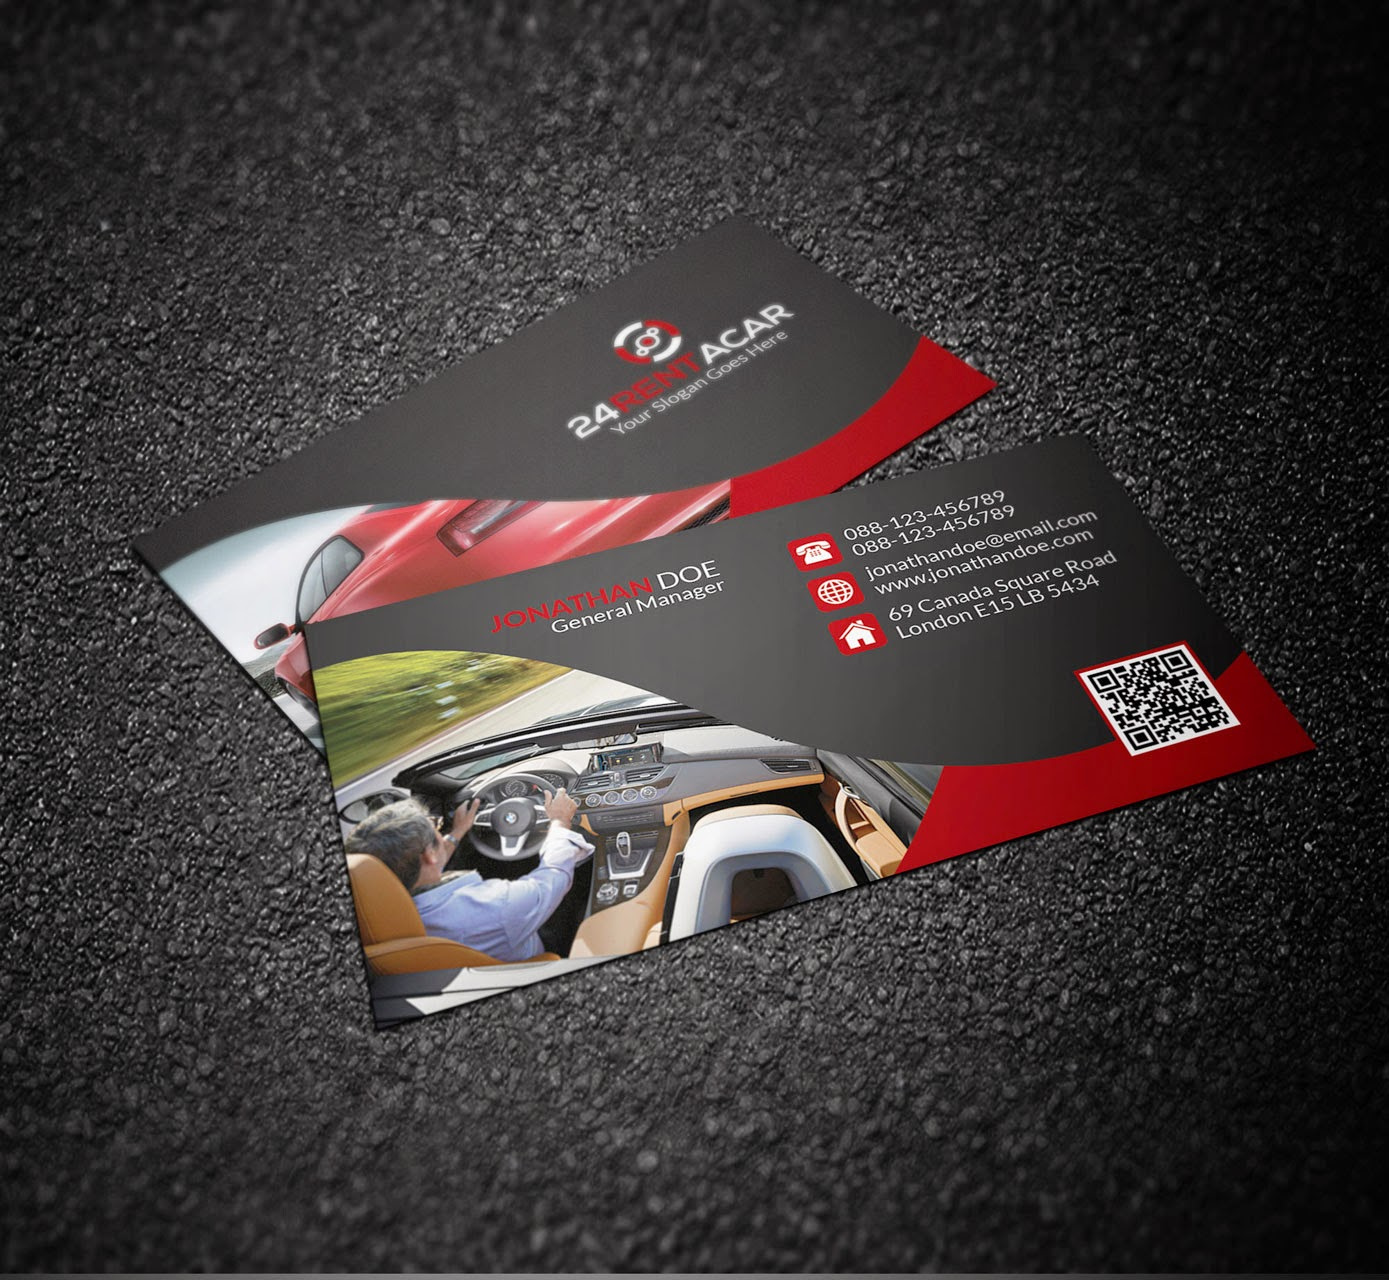 Car business cards gallery free business cards graphicwind rent a car business card rent a car business card magicingreecefo gallery magicingreecefo Gallery